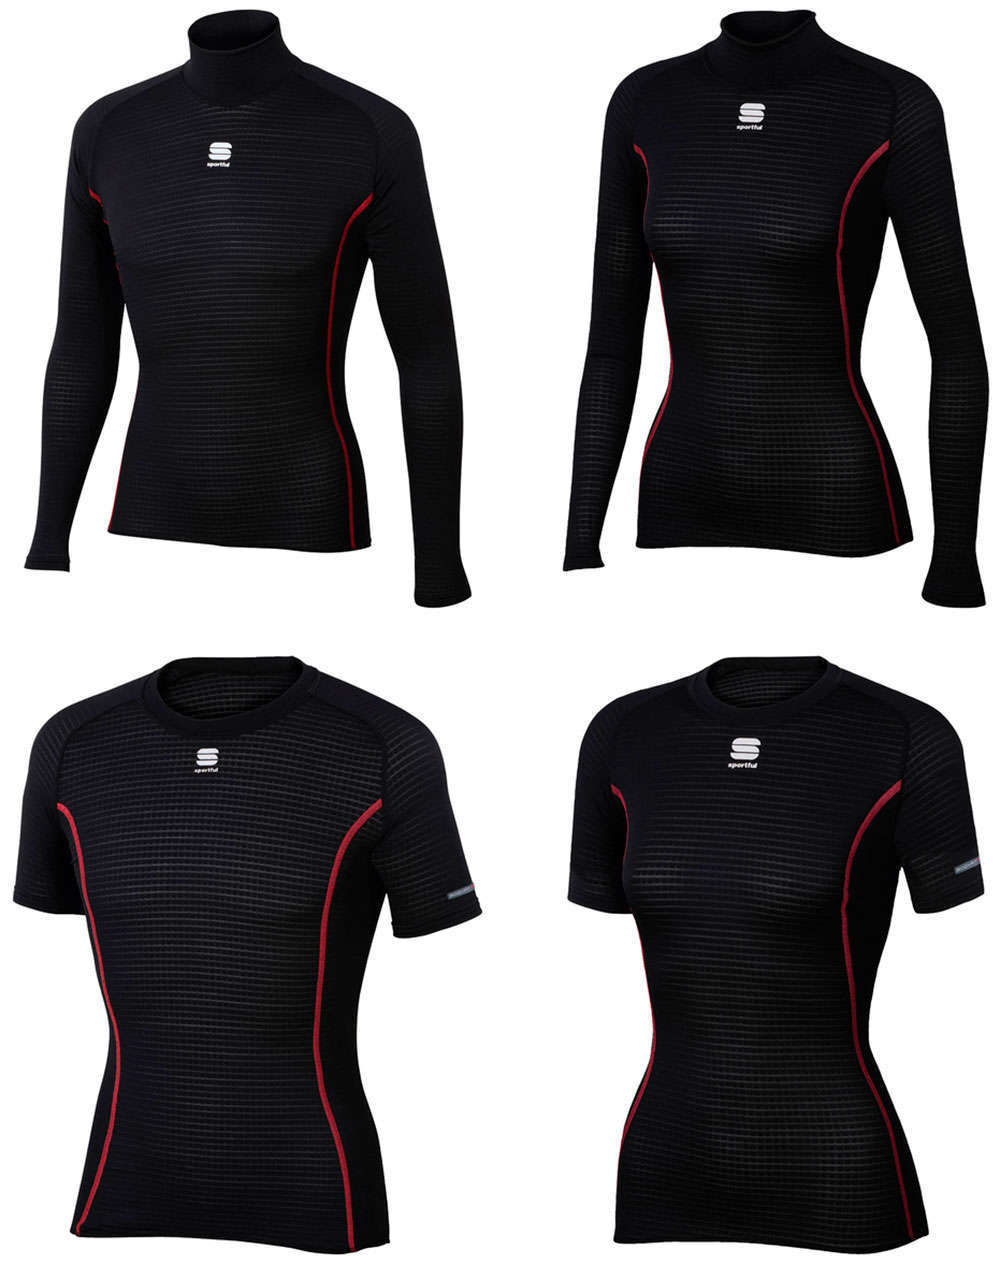 En TodoMountainBike: Adiós al frío con las camisetas interiores Sportful Fiandre Thermo Layer SS y Bodyfit Pro Base Layer